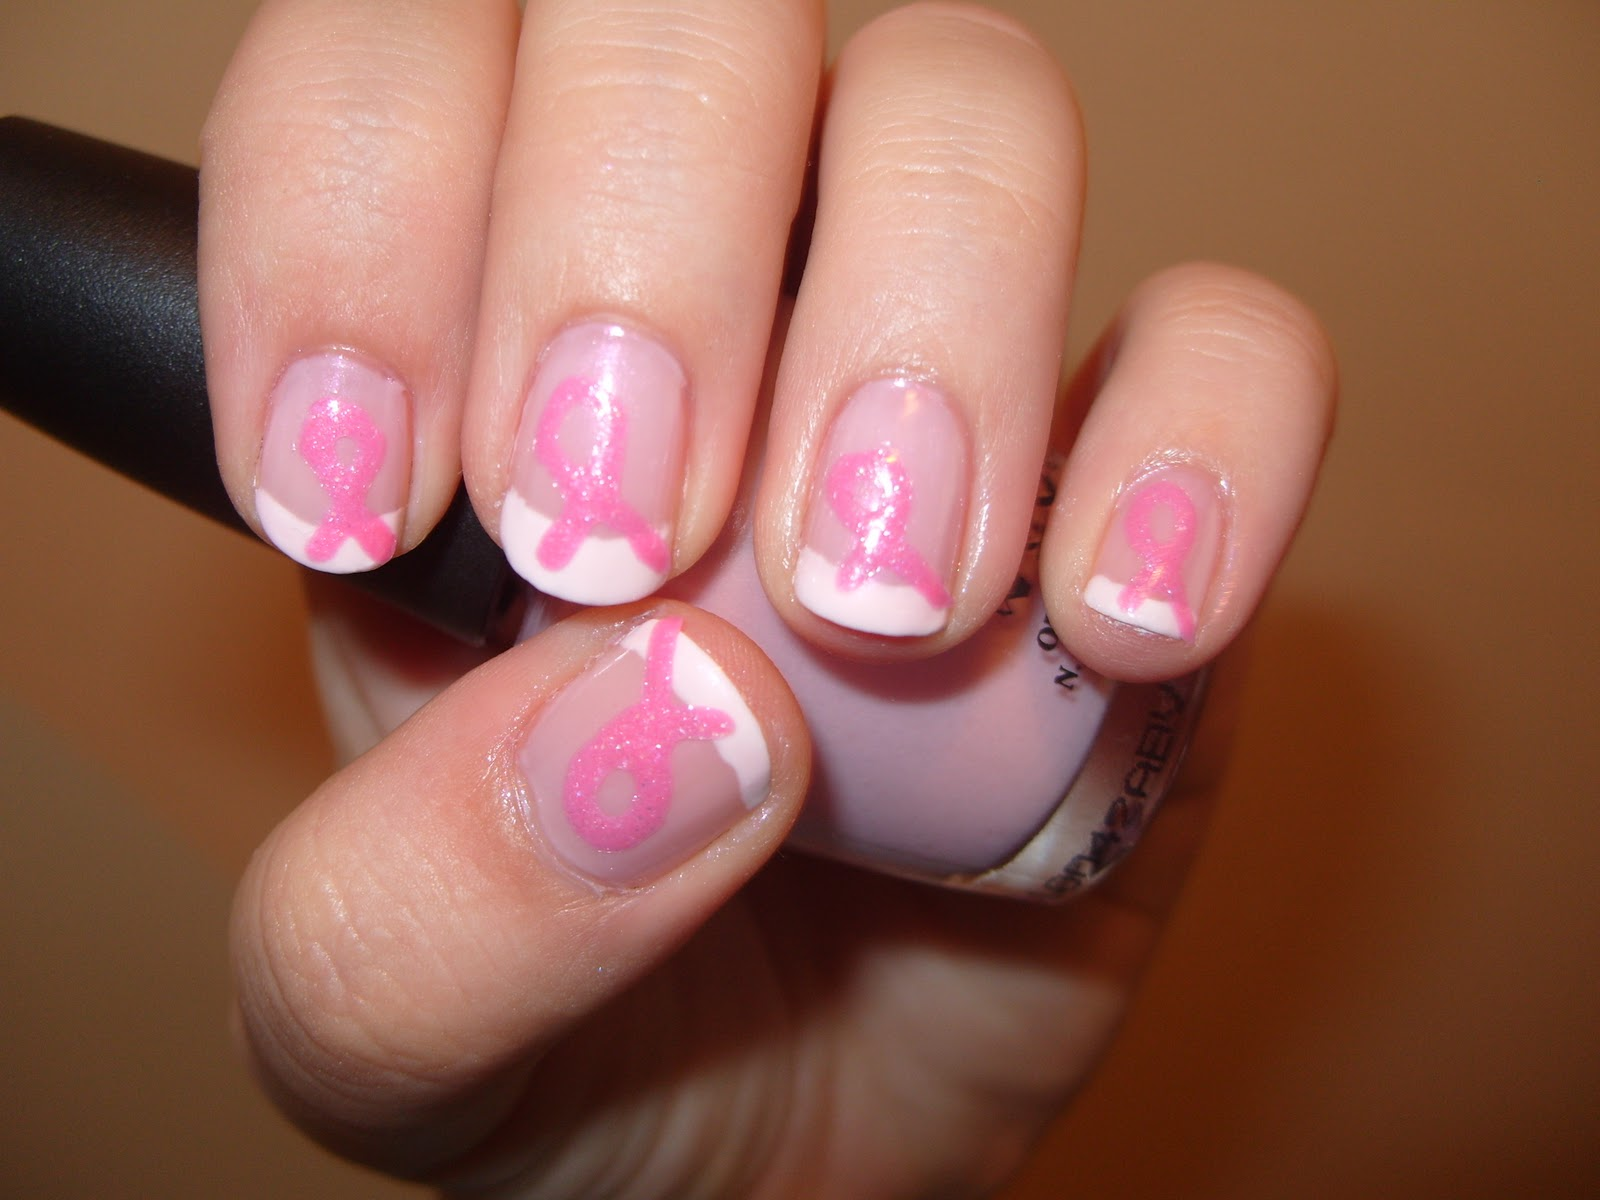 Against the pink manicure trends